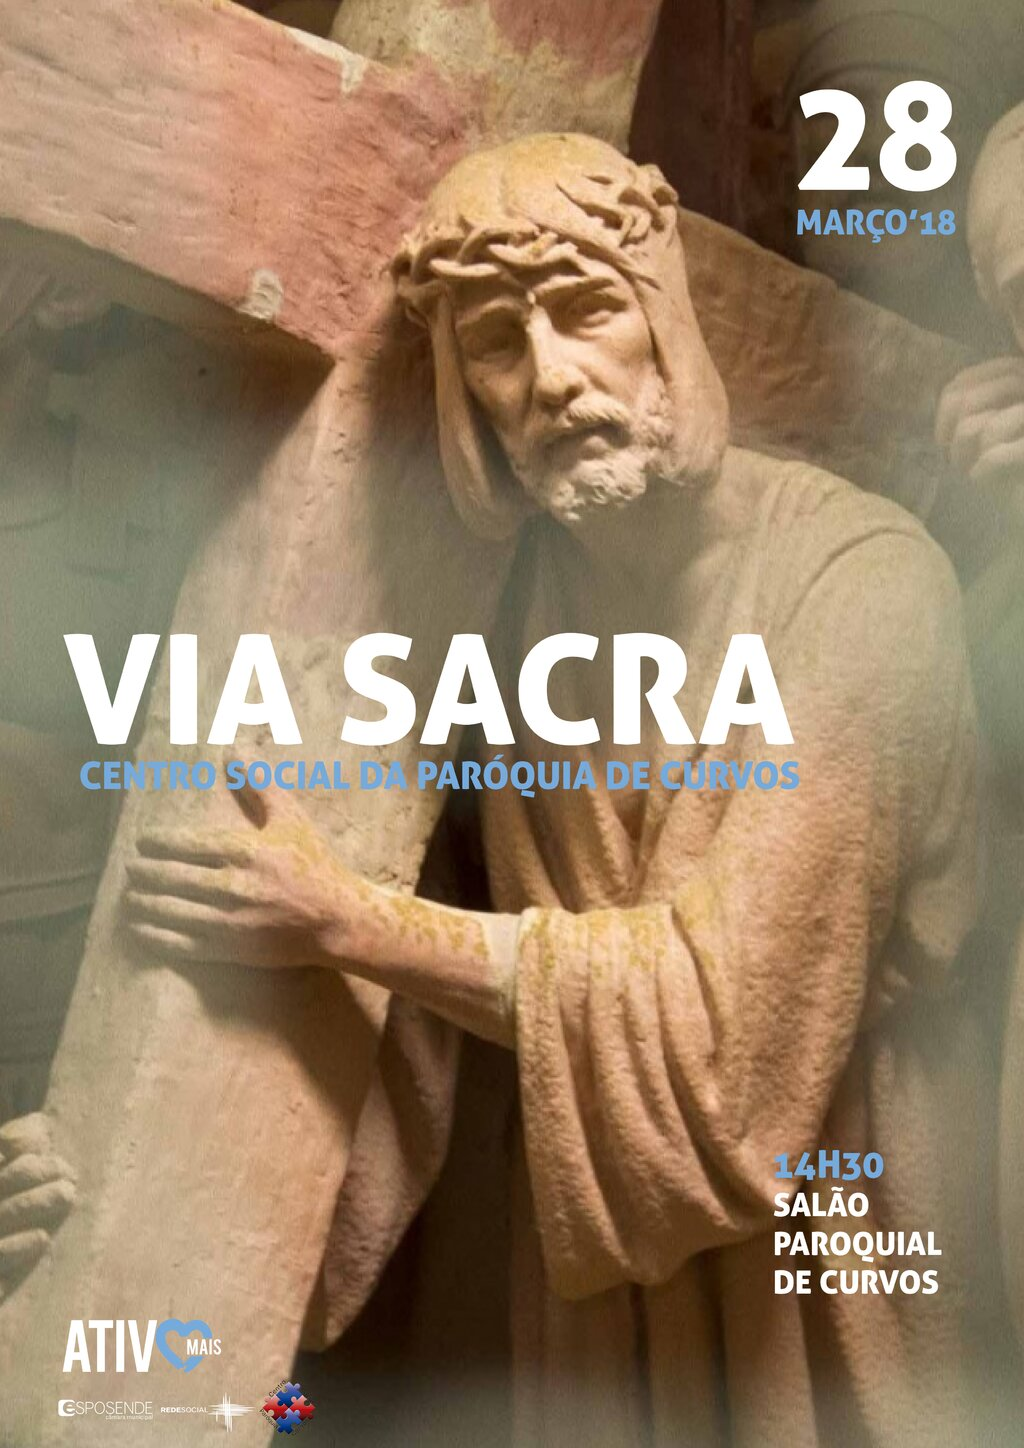 Cartaz via sacra 1 1024 2500